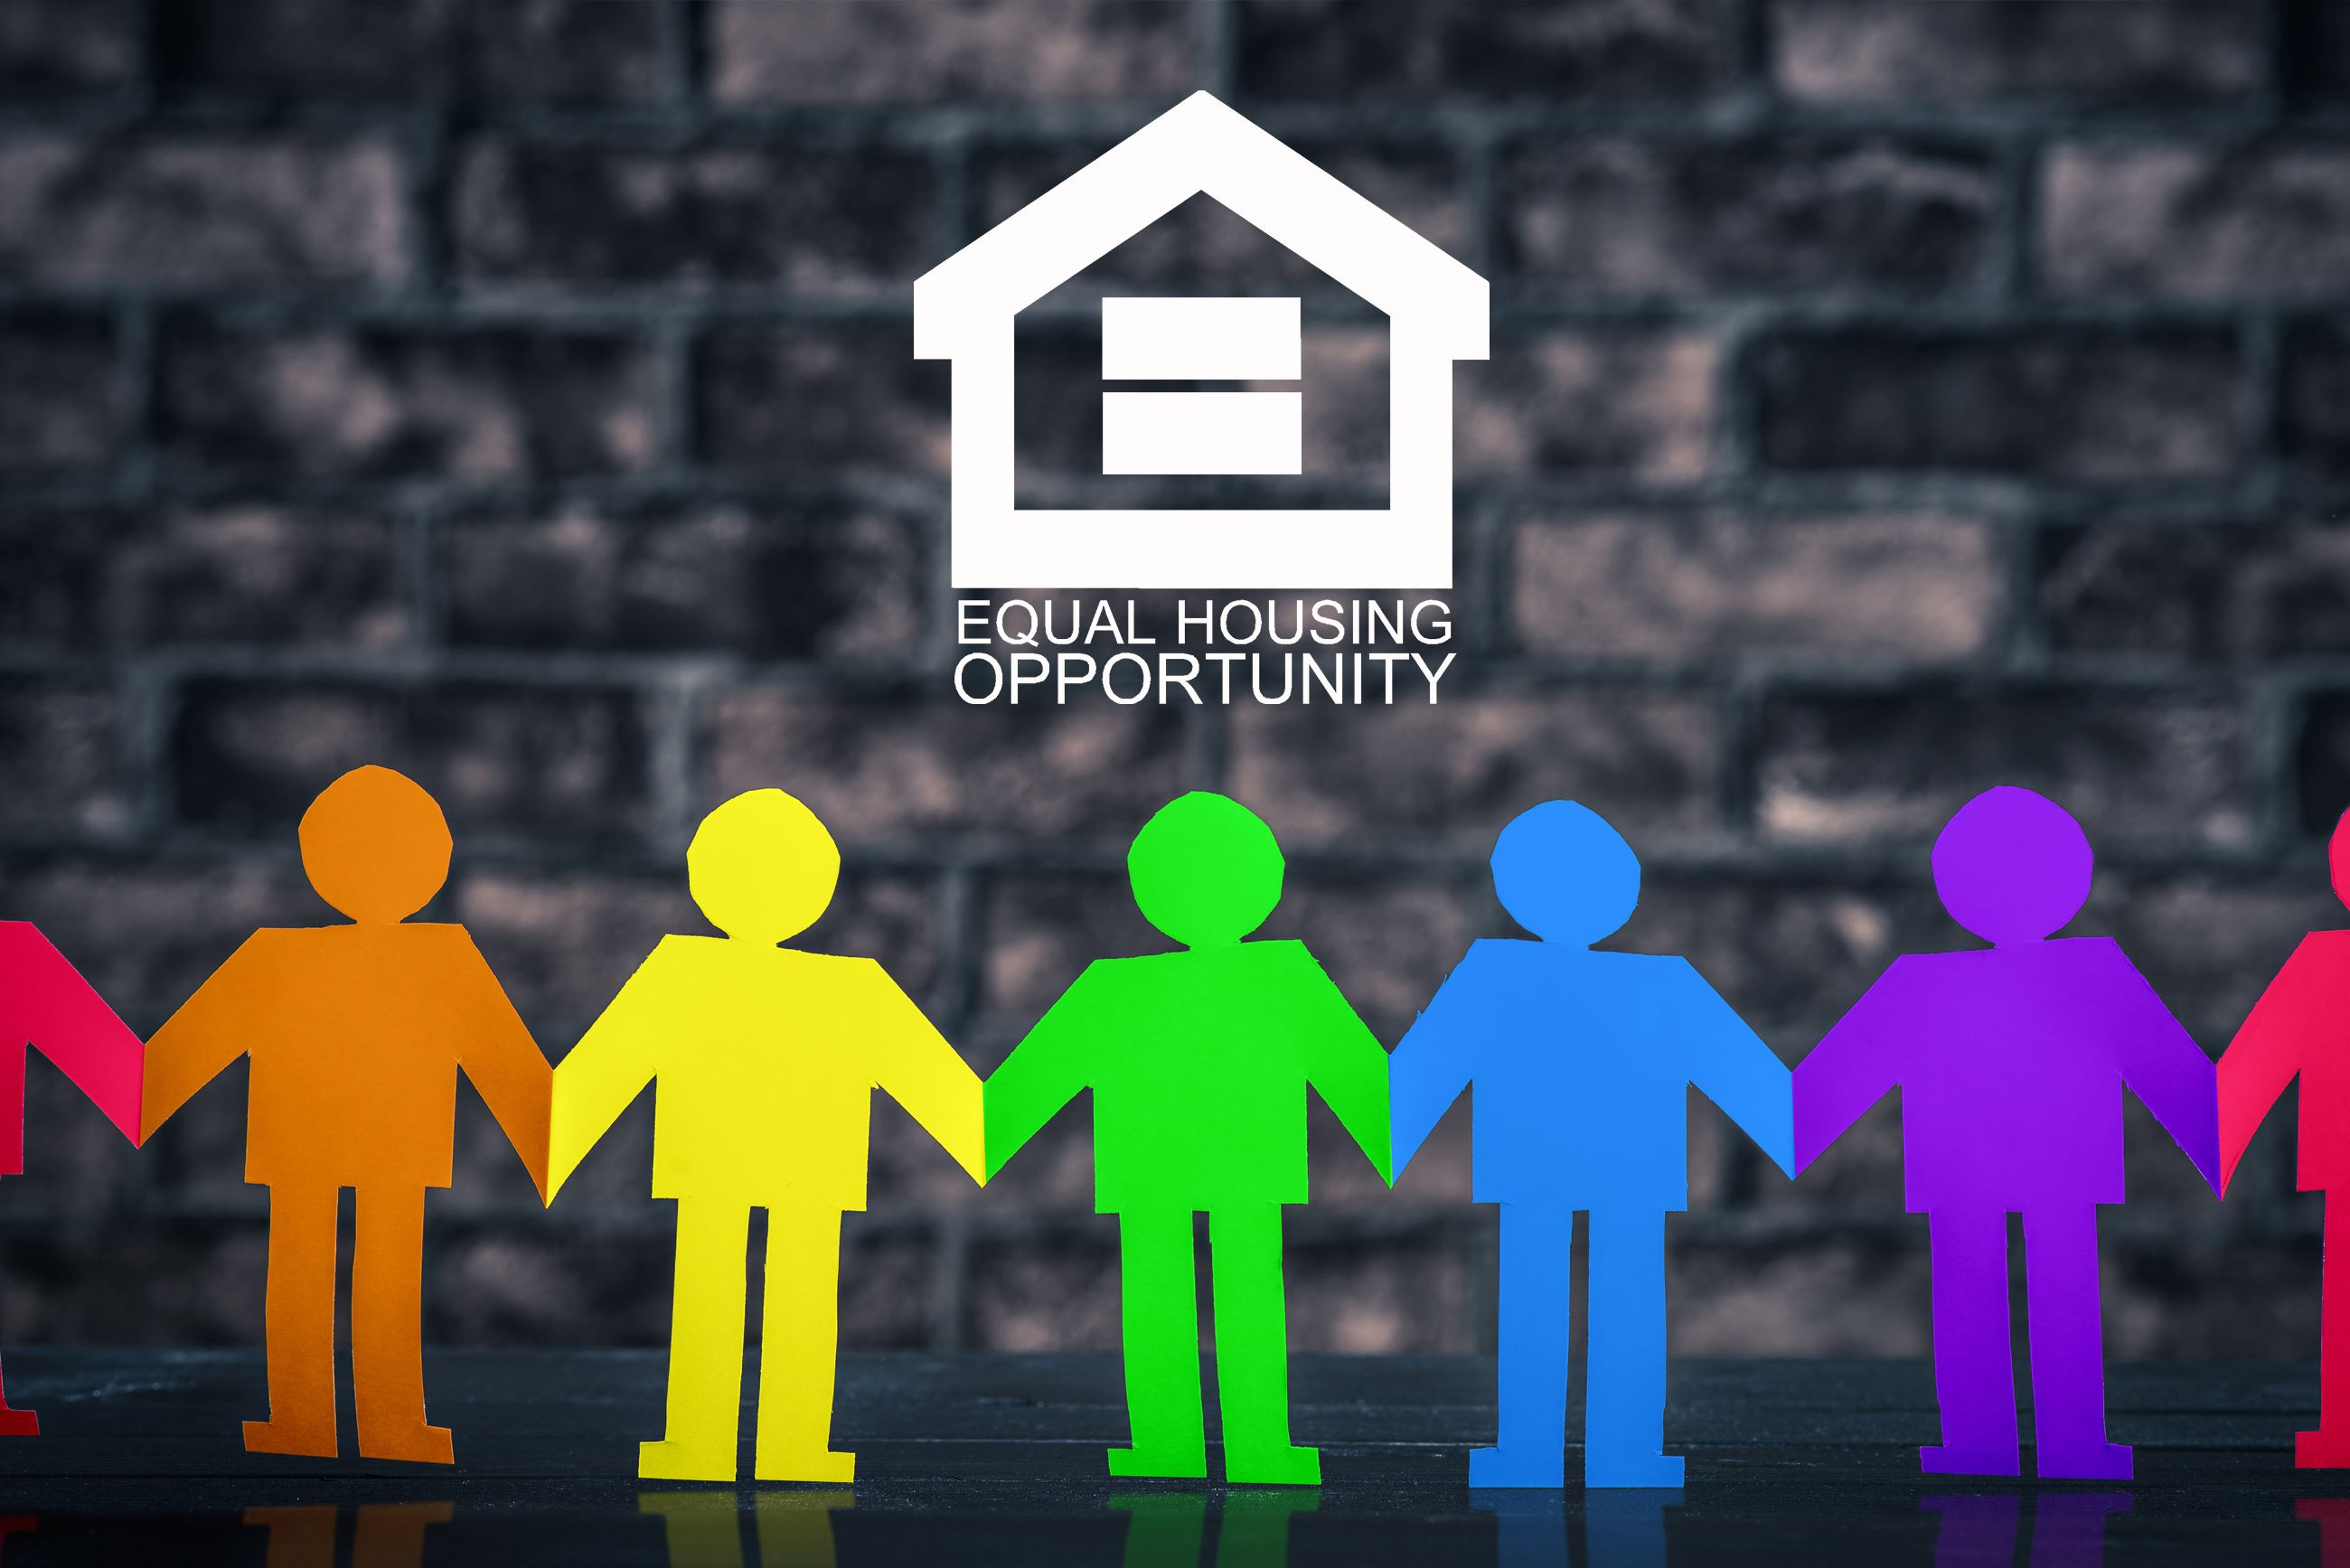 Equal Housing Webpage Image